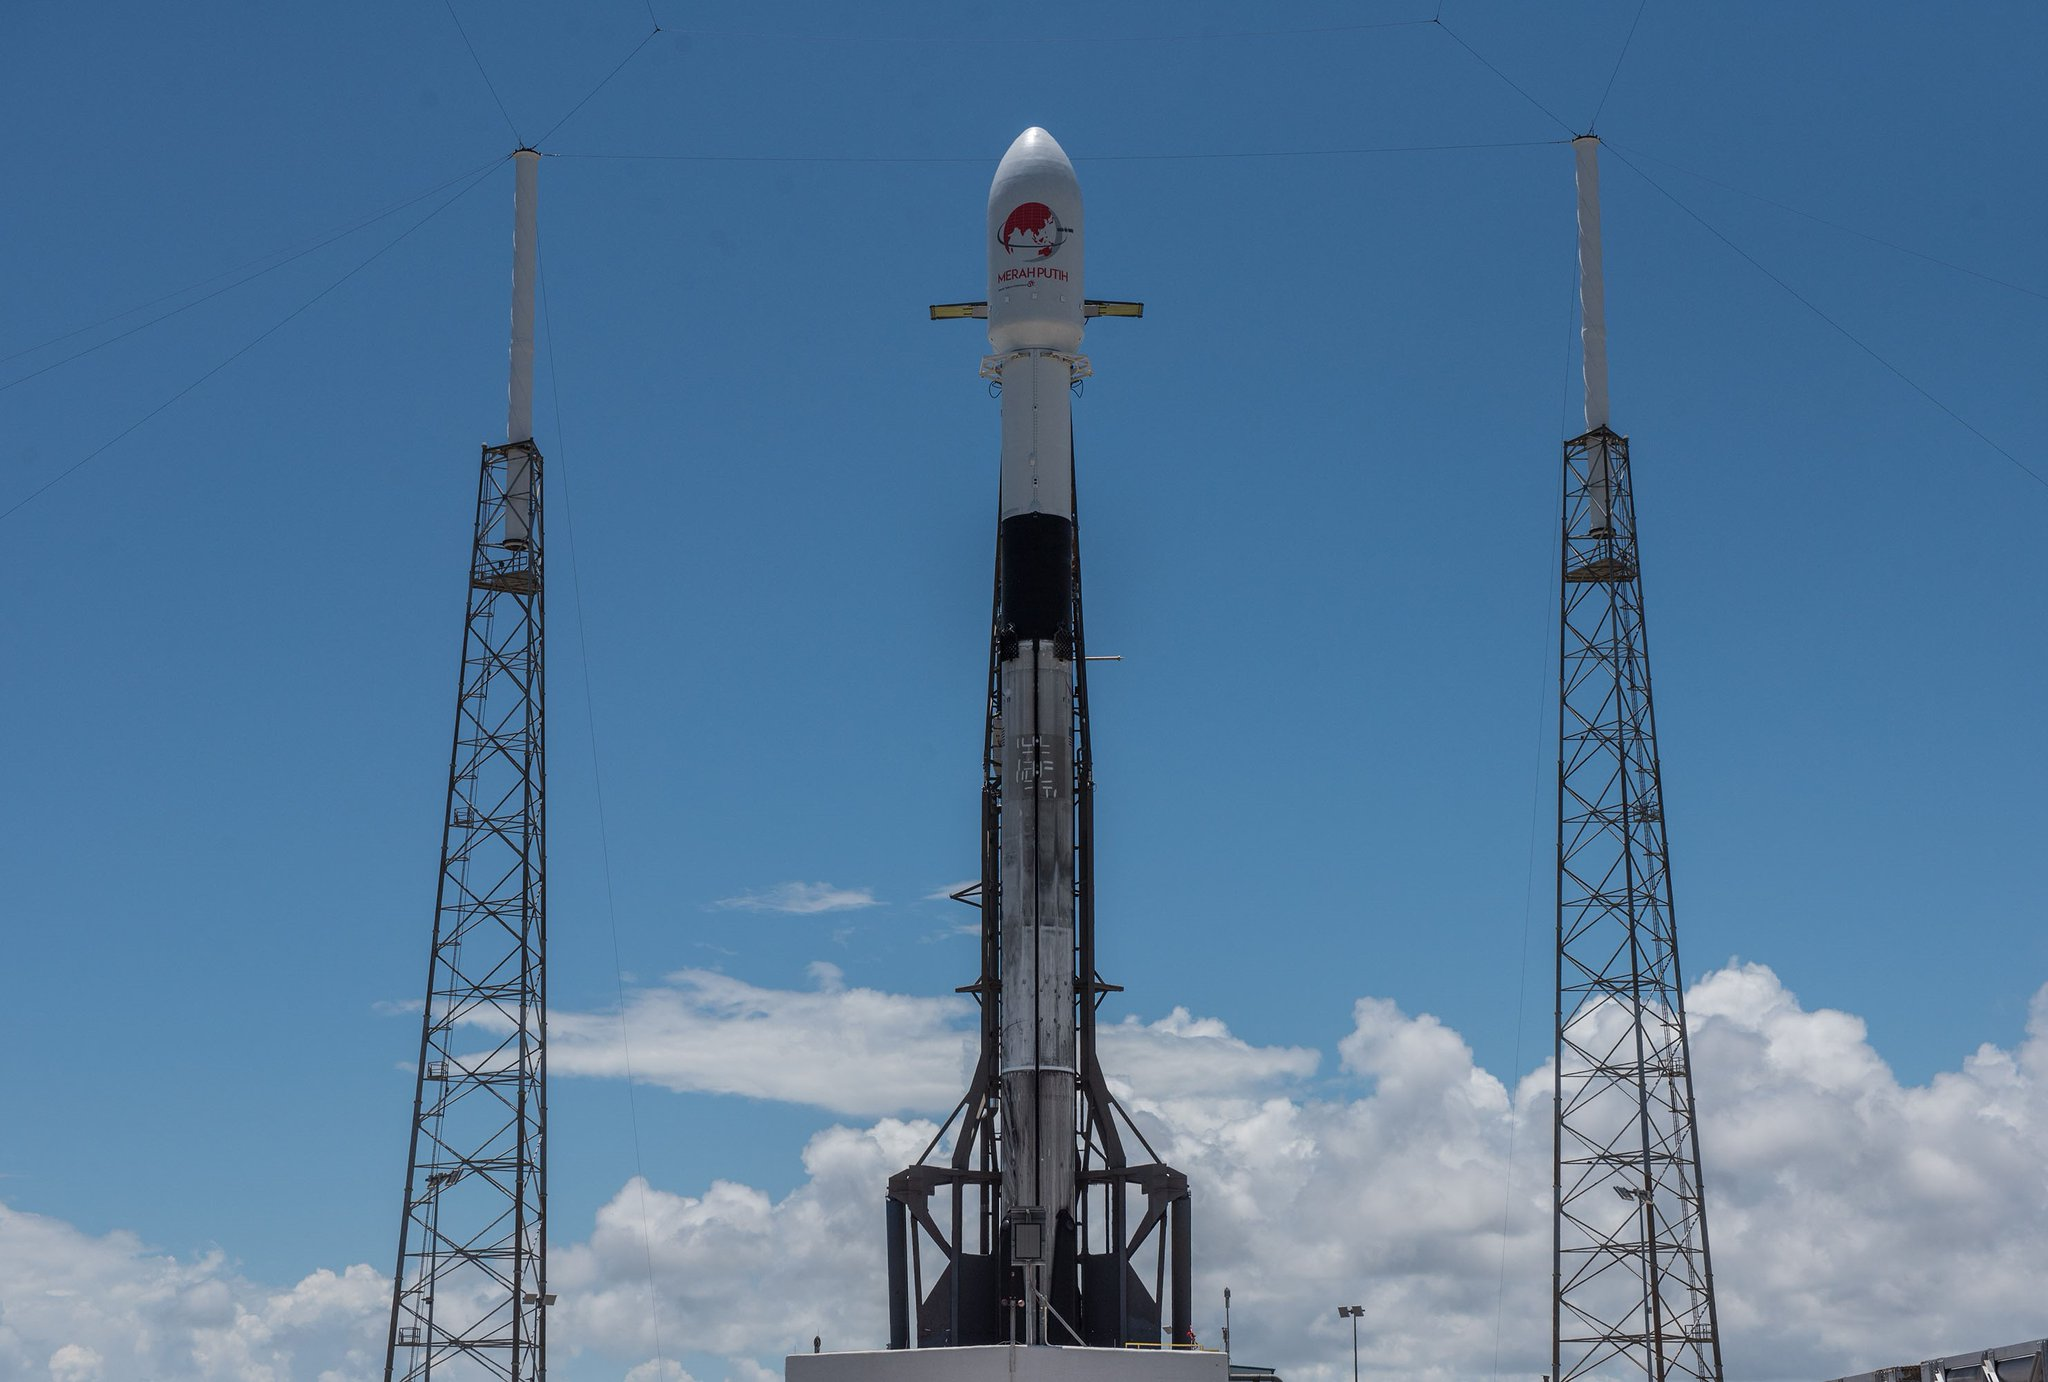 SpaceX's Falcon 9 rocket stood tall in Cape Canaveral, Florida just before launch on Tuesday.